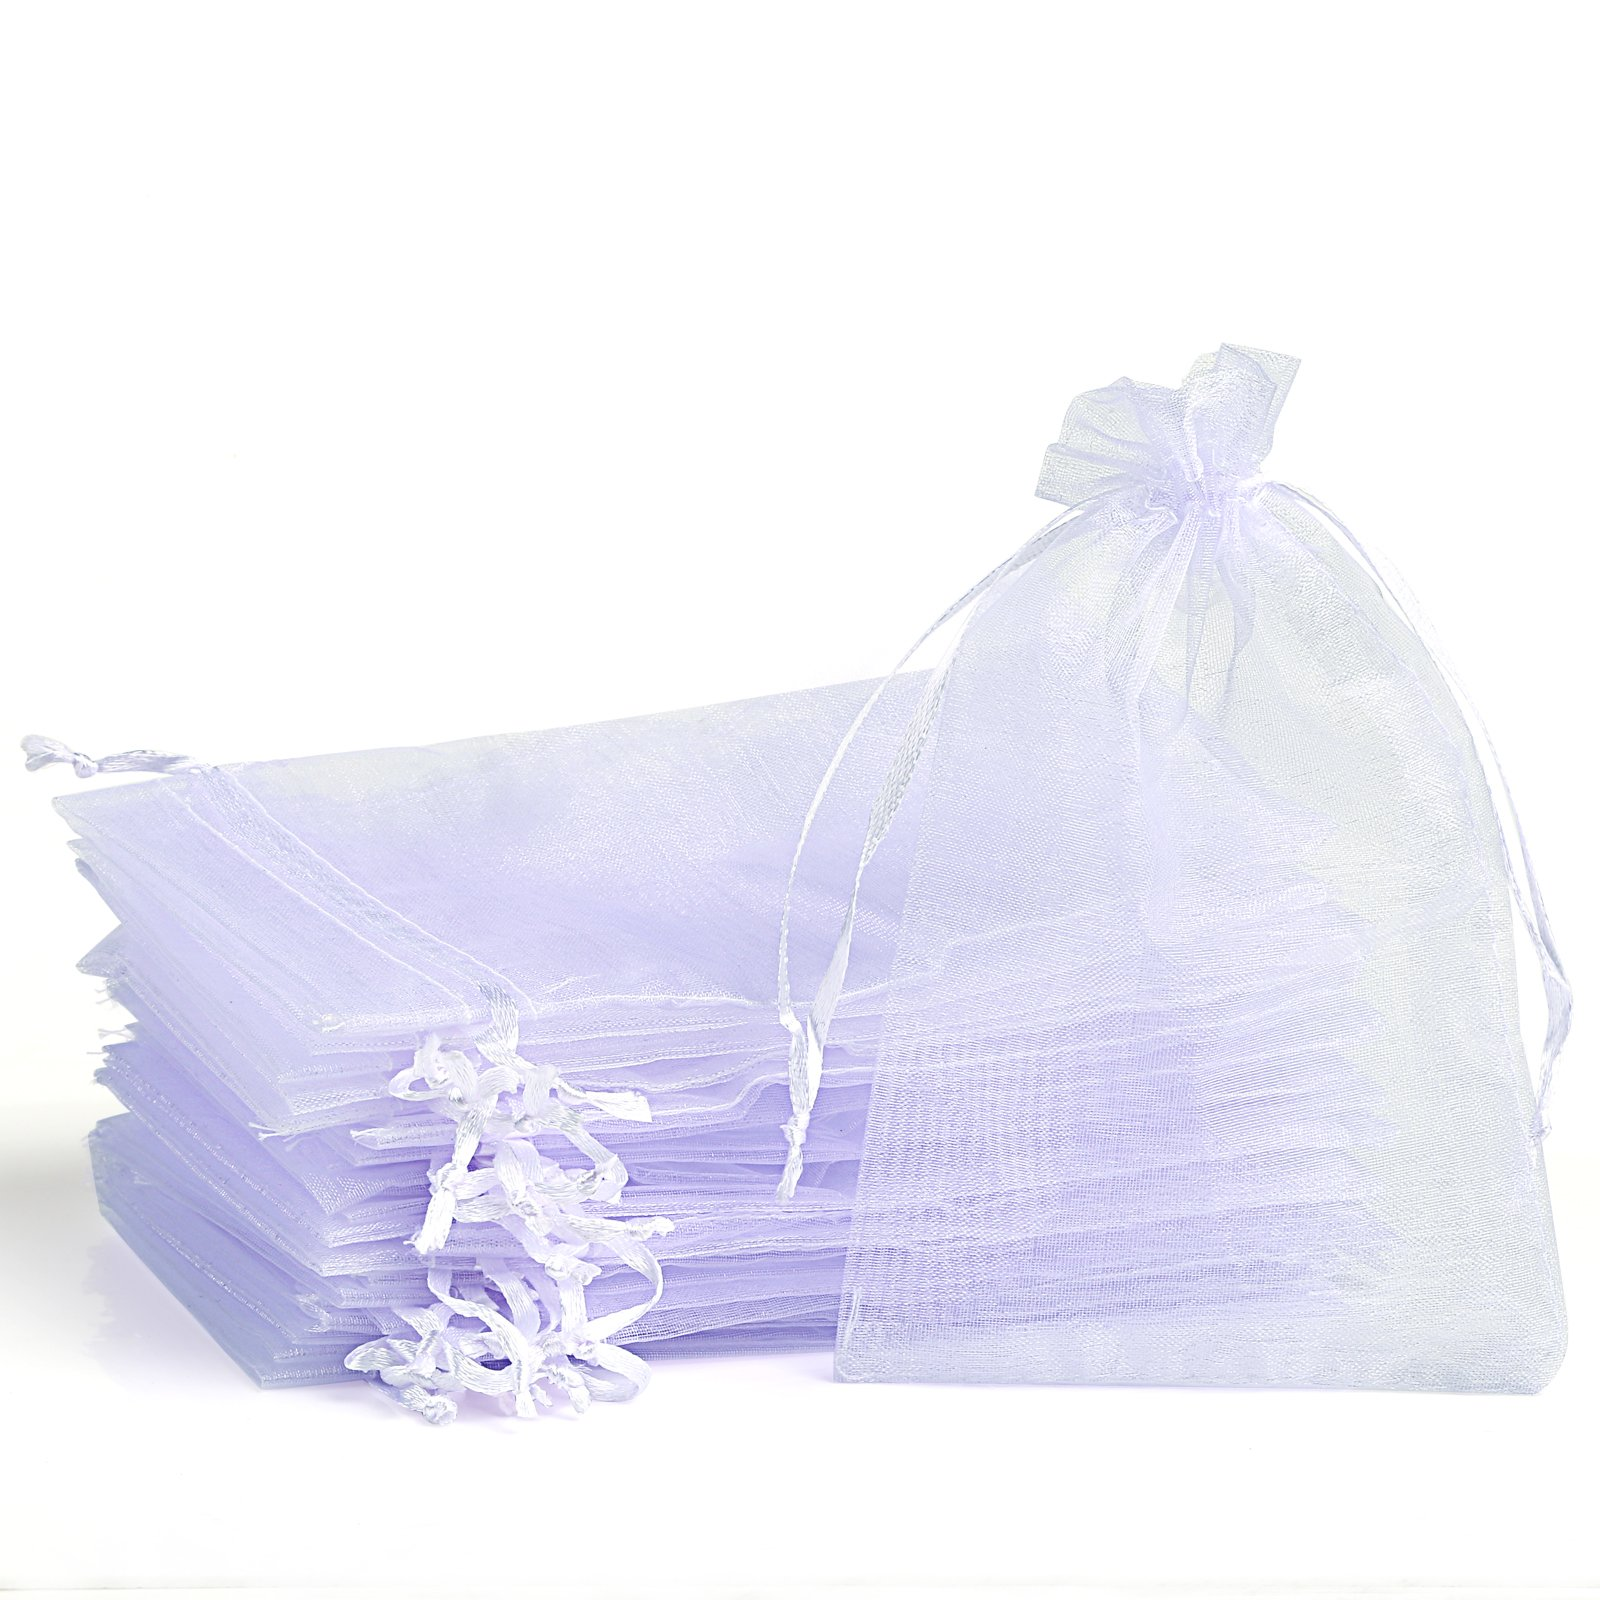 Naler Organza Drawstring Jewelry Pouches Sheer Wedding Favor Bags 120Pcs 4''x6'' - White